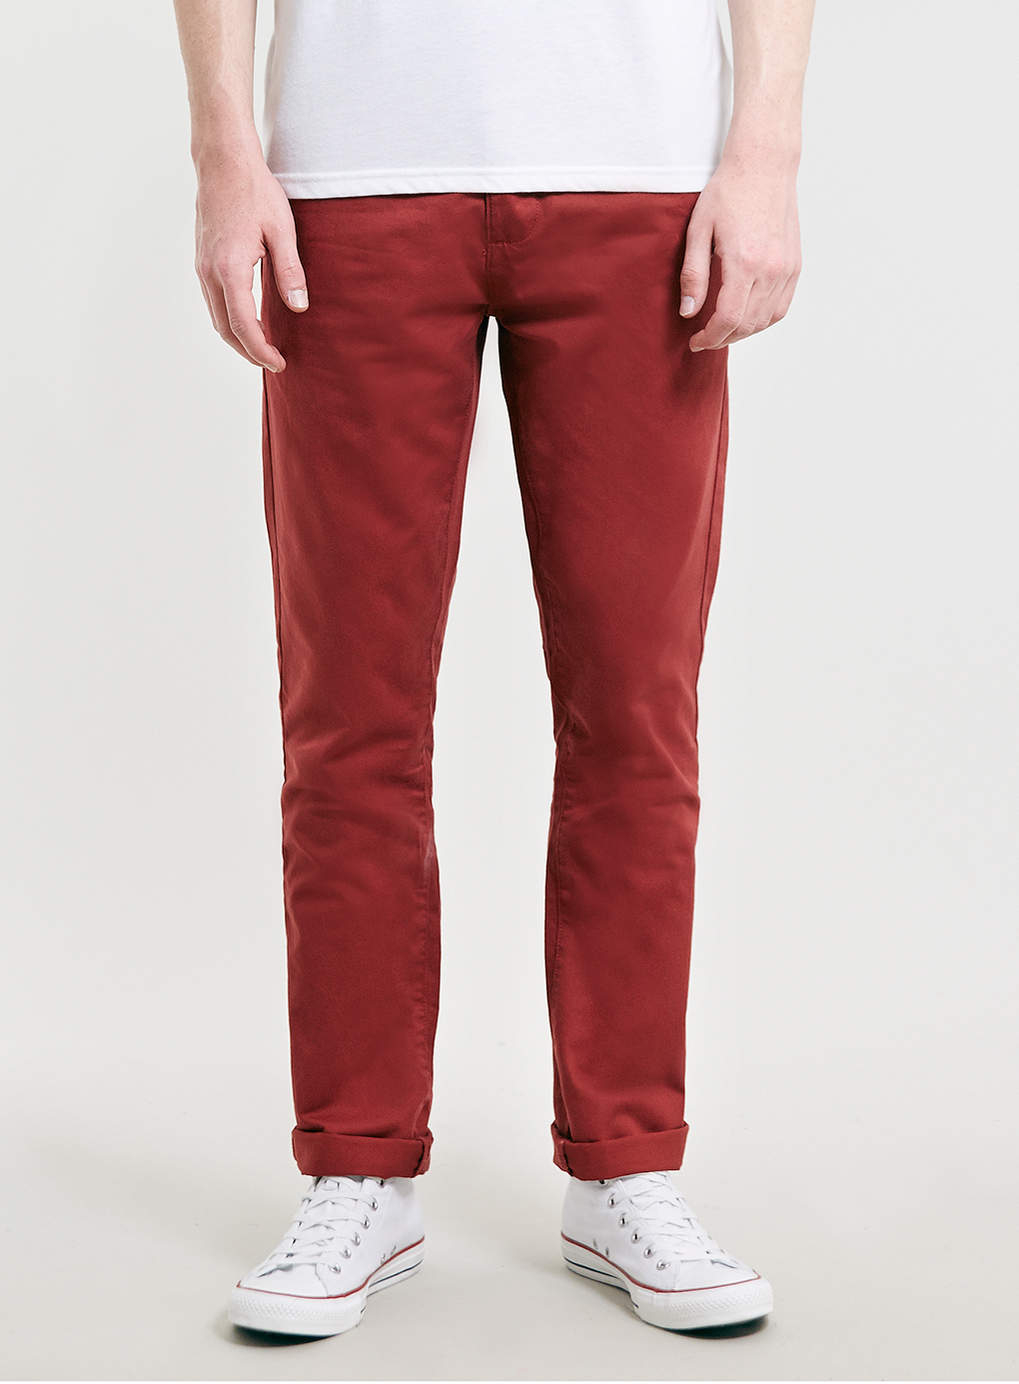 Vibes ProActive Men's Burgundy Fleece Cargo Pants Relax Fit Open Bottom Drawstring. Sold by Vibes Base Enterprises Inc. $ CONCITOR Men's Dress Pants Trousers Flat Front Slacks Solid BURGUNDY, PINK Color. Sold by TSRA CLOTHING. $ Neil Allyn 7-Piece Tuxedo with Flat Front Pants Burgundy Vest and Tie.